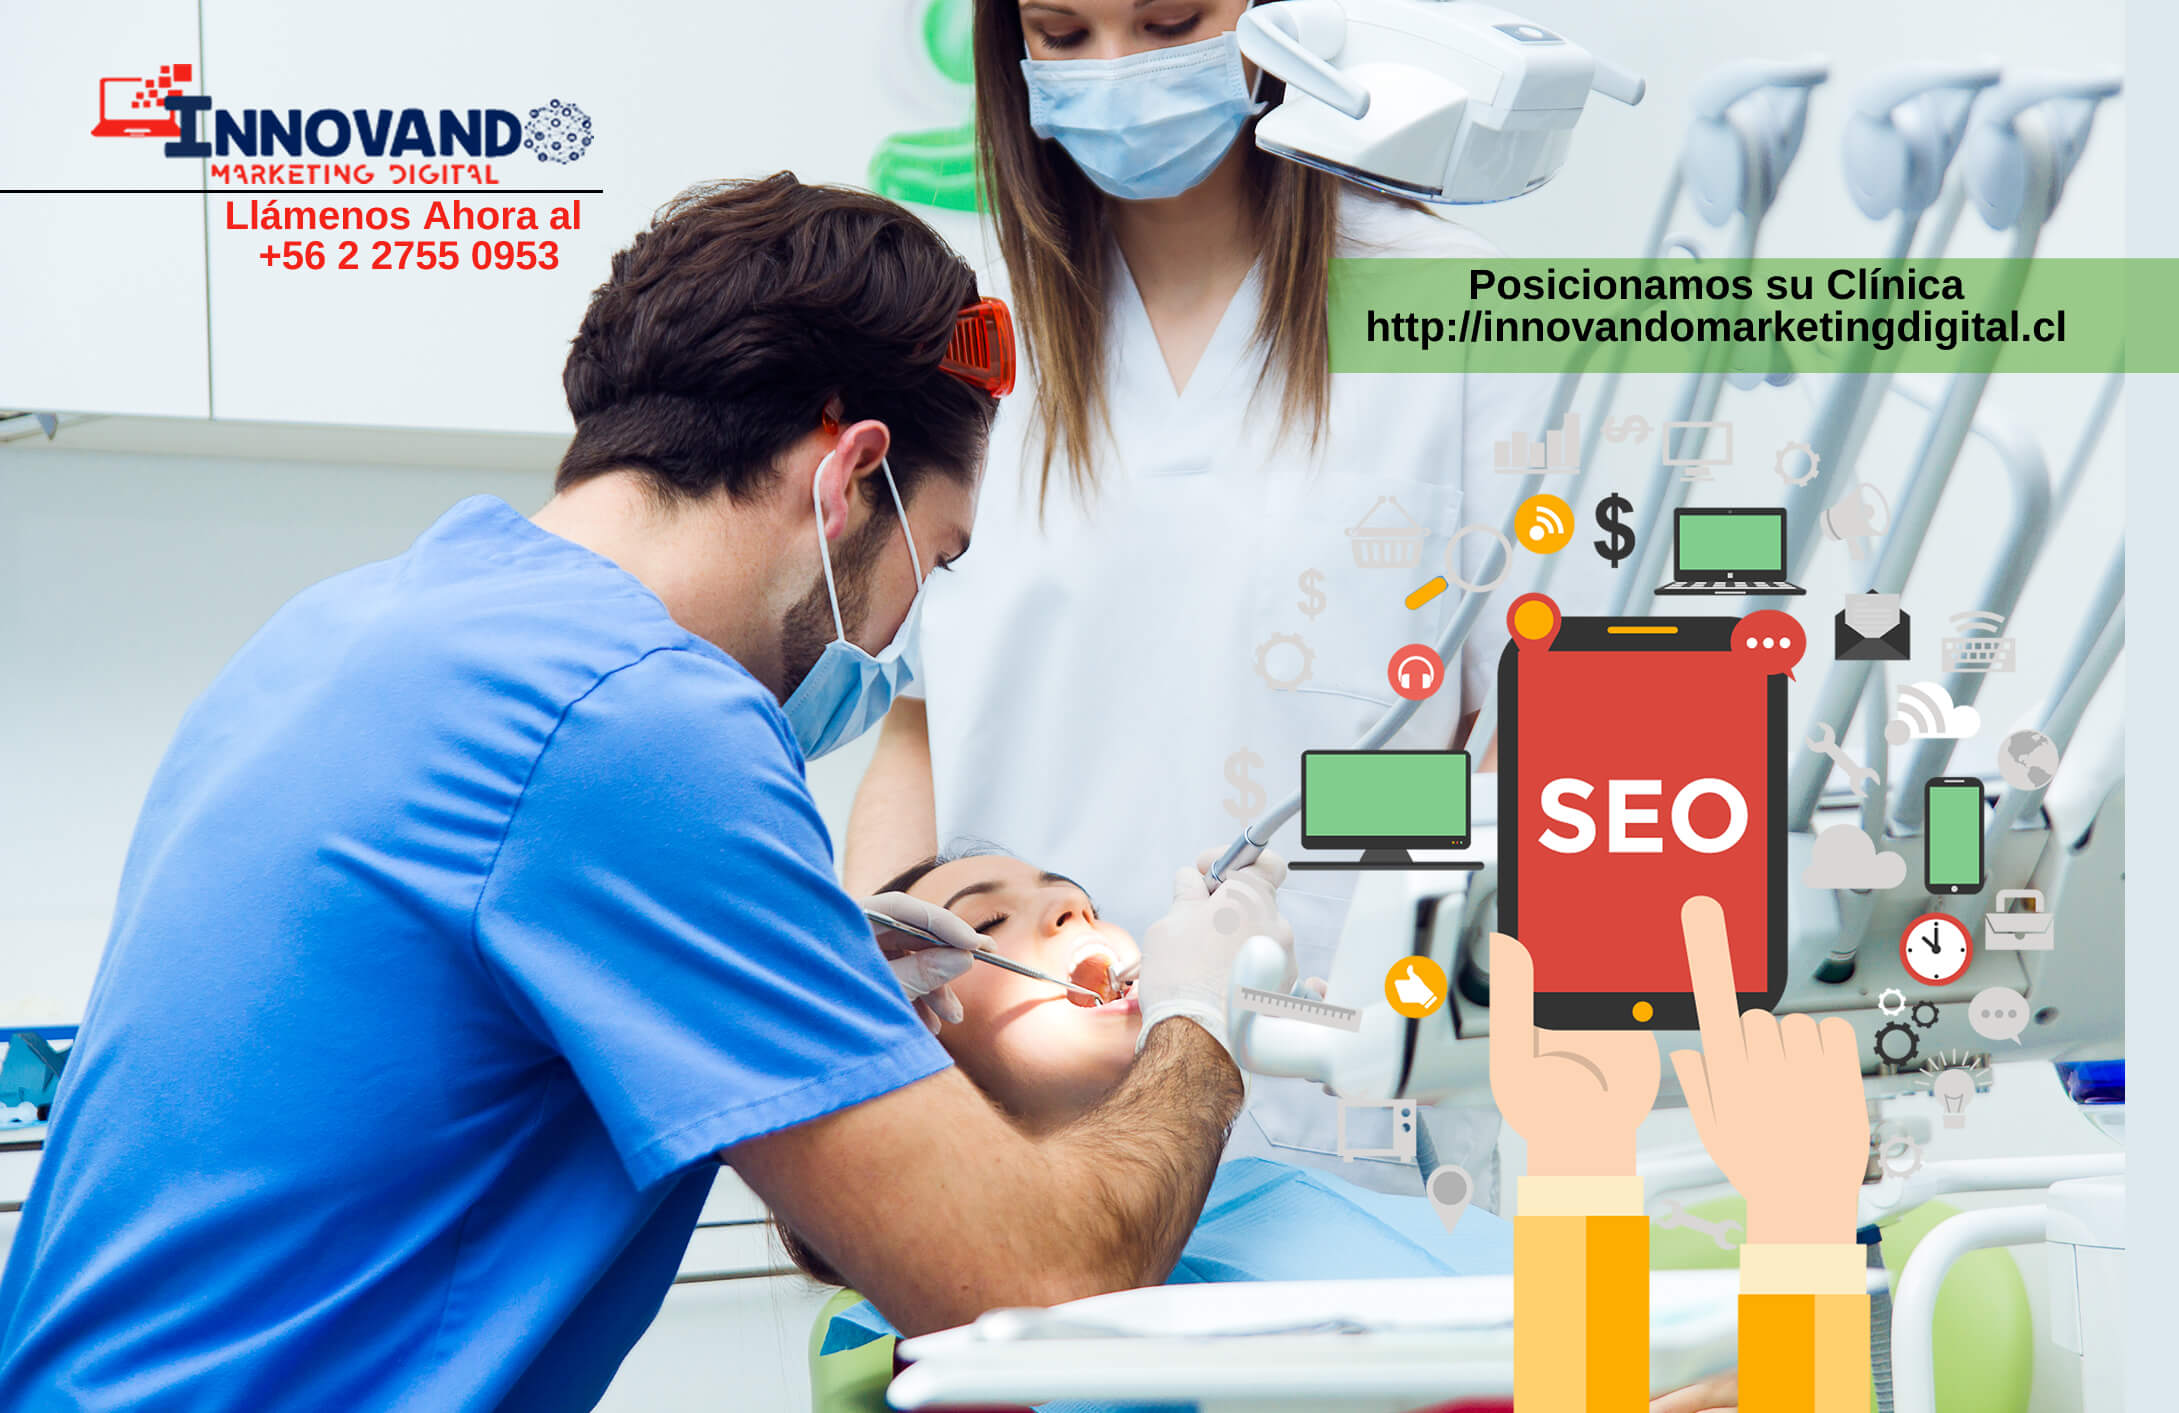 posicionamiento seo local para clinicas en chile